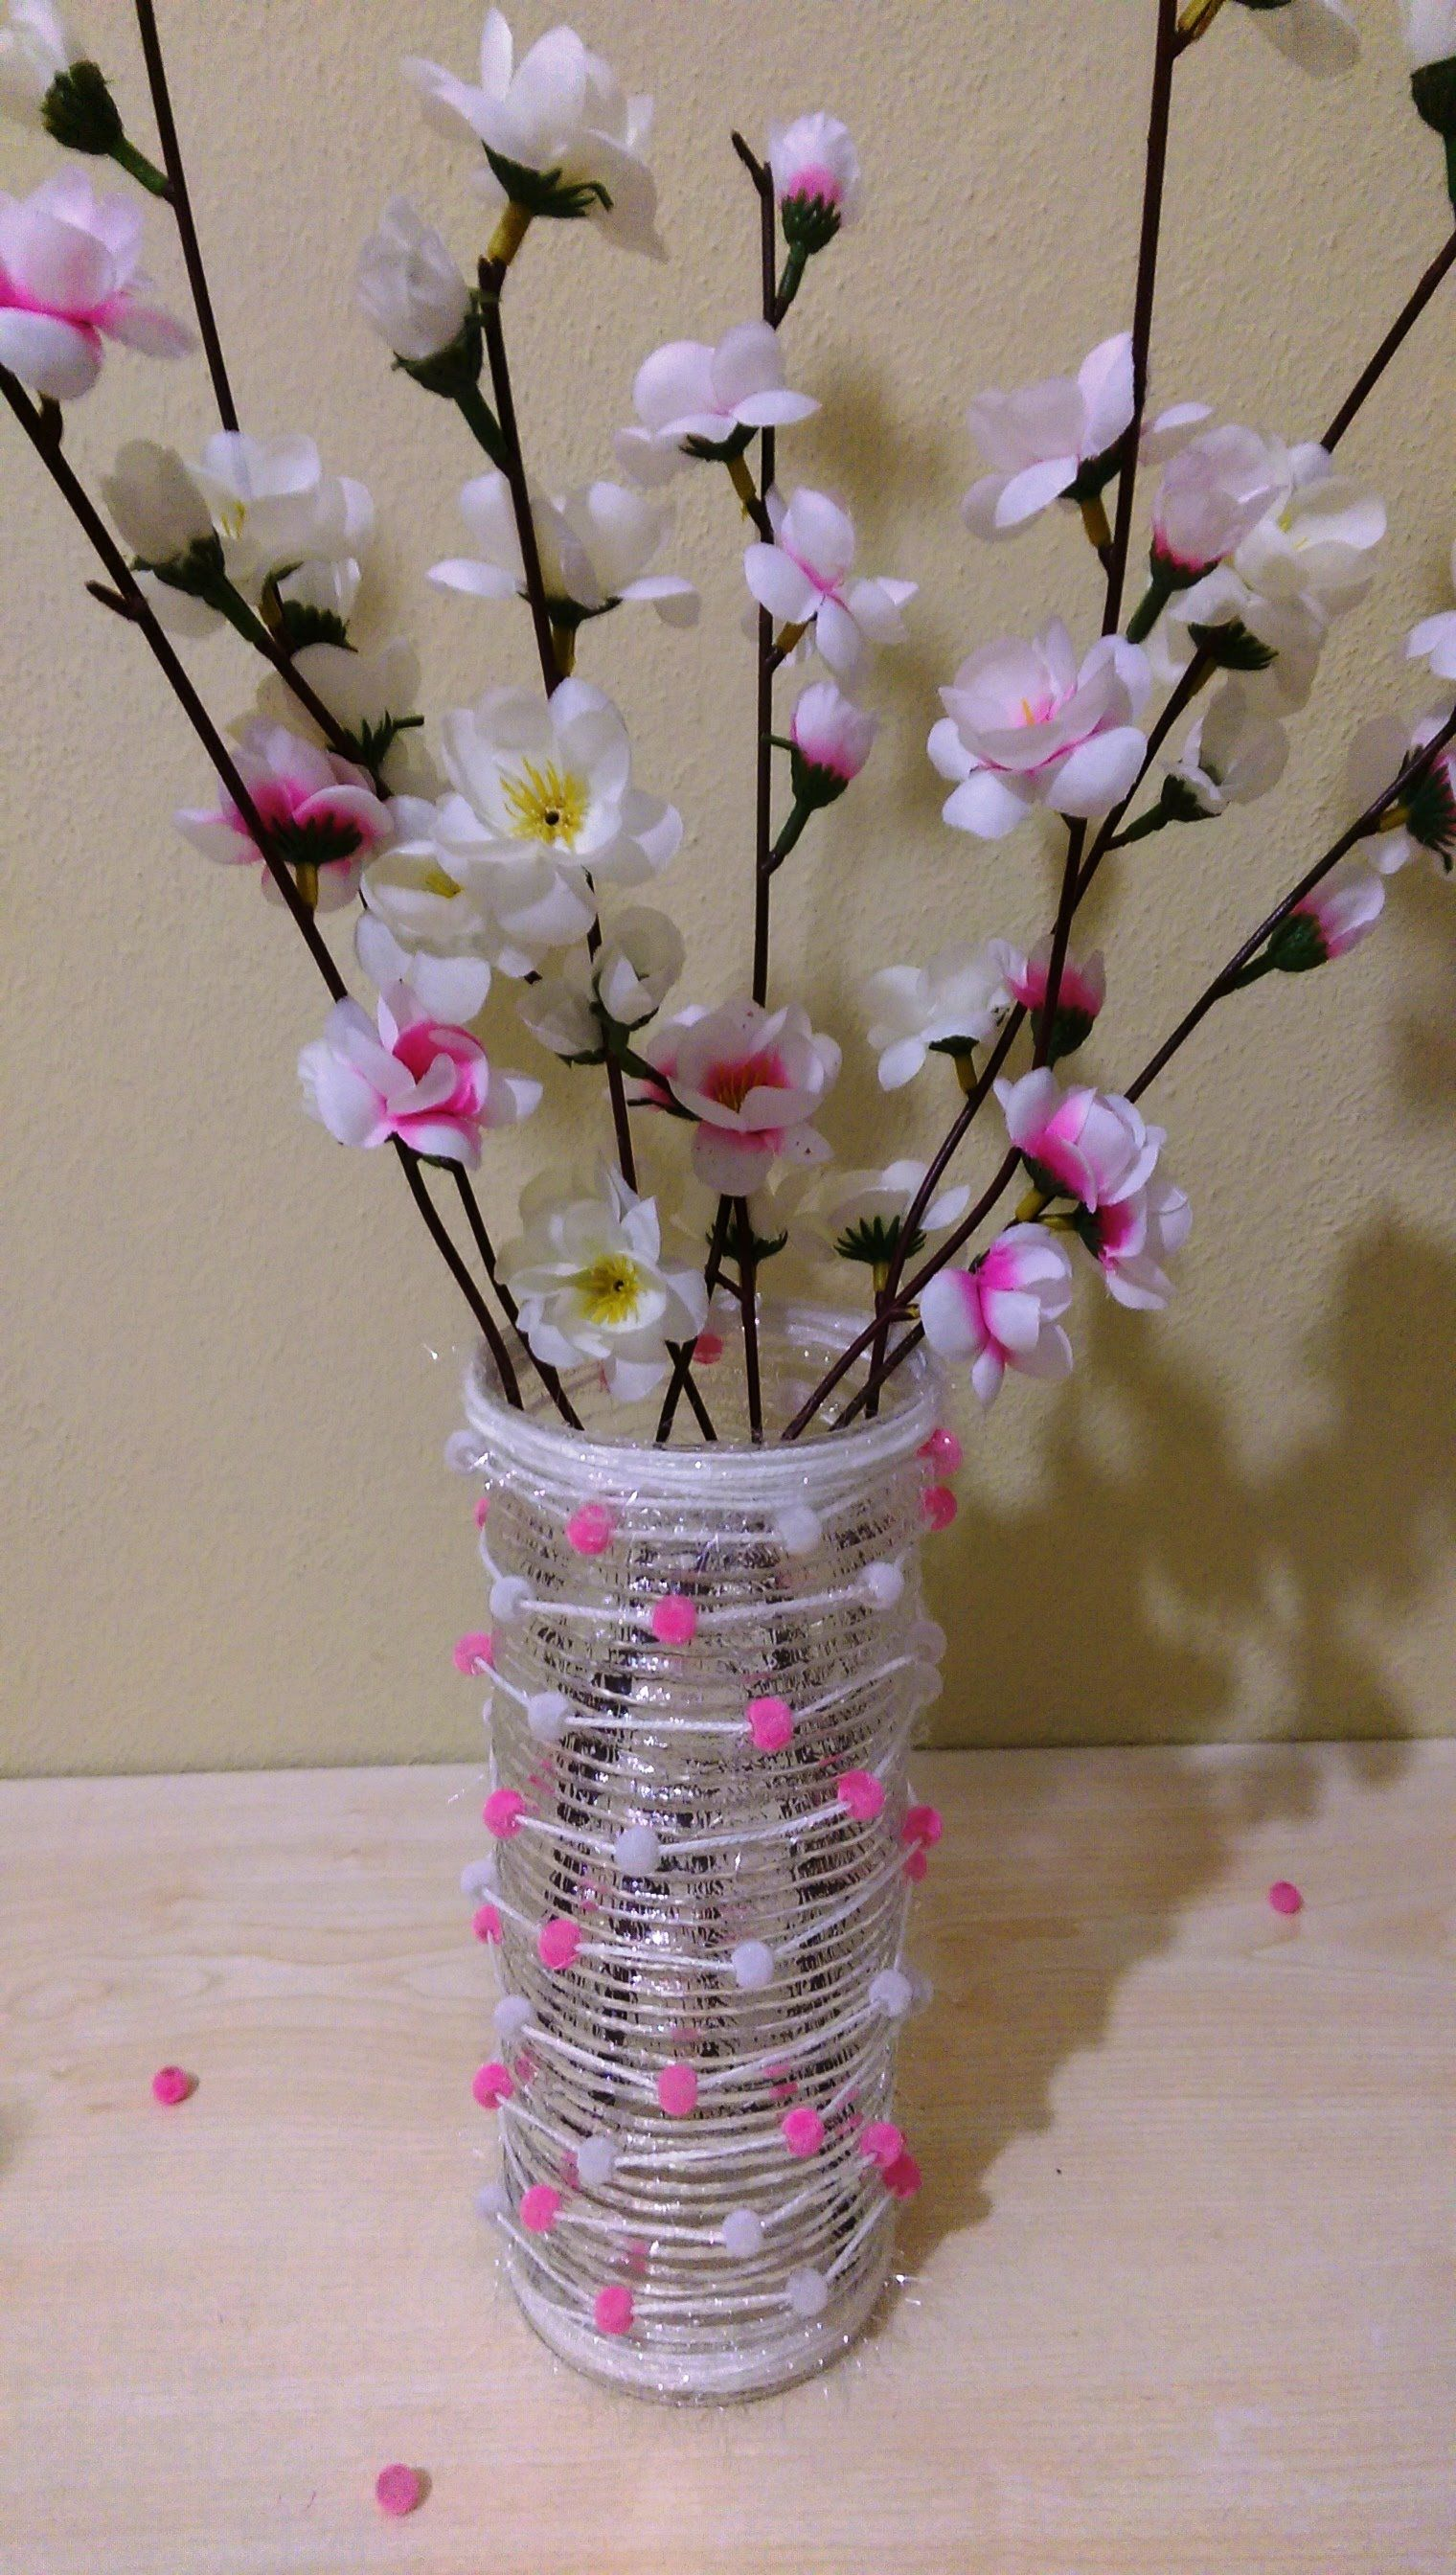 Diy decorating vase with string and beads boncuk ve ple vazo diy decorating vase with string and beads boncuk ve ple vazo ssleme reviewsmspy